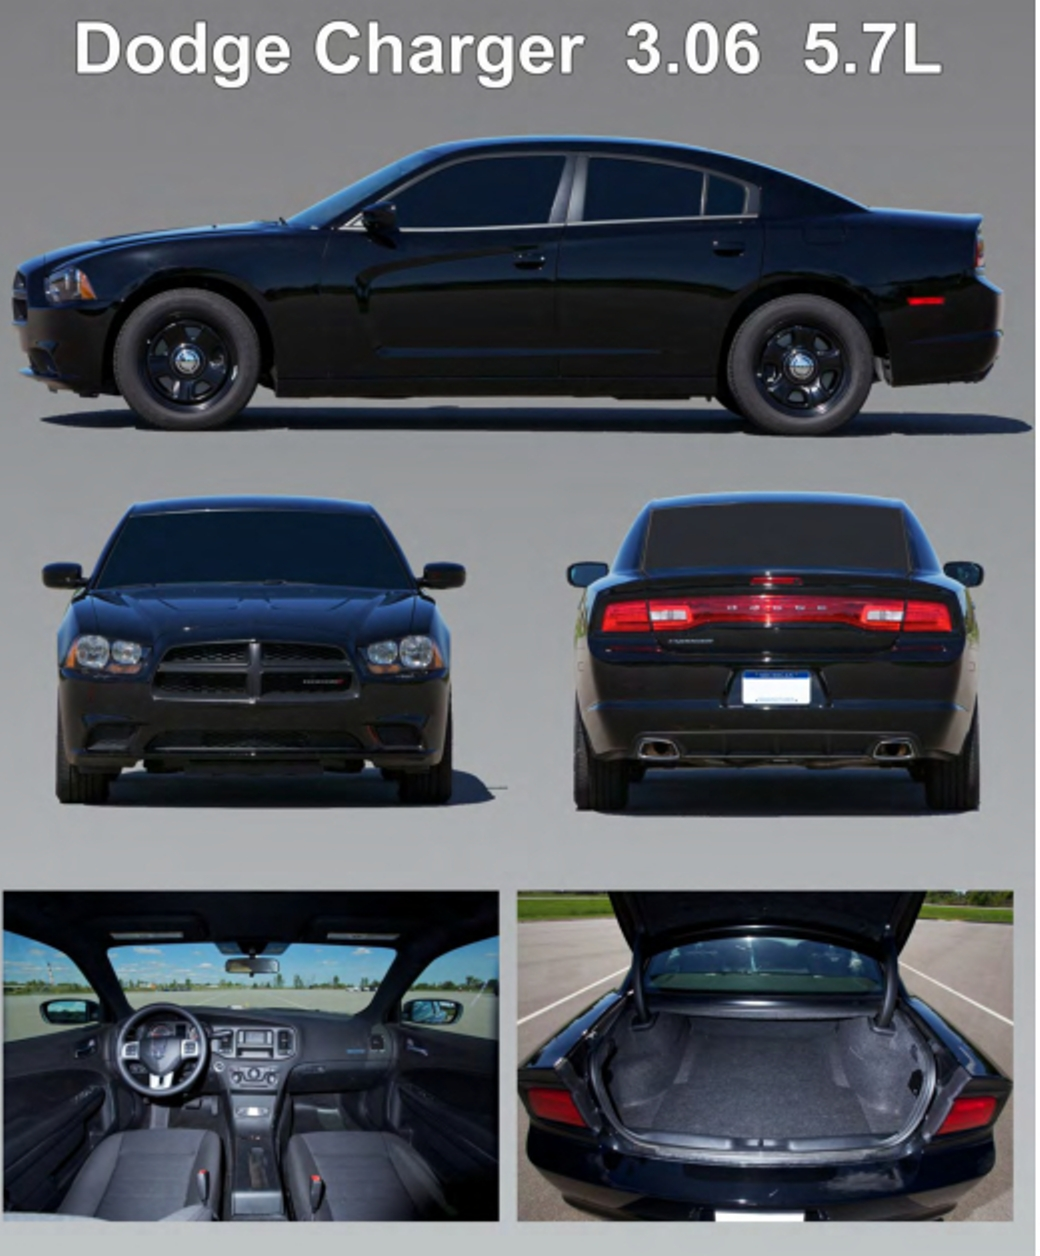 2014 Dodge Charger Pursuit | Top Speed